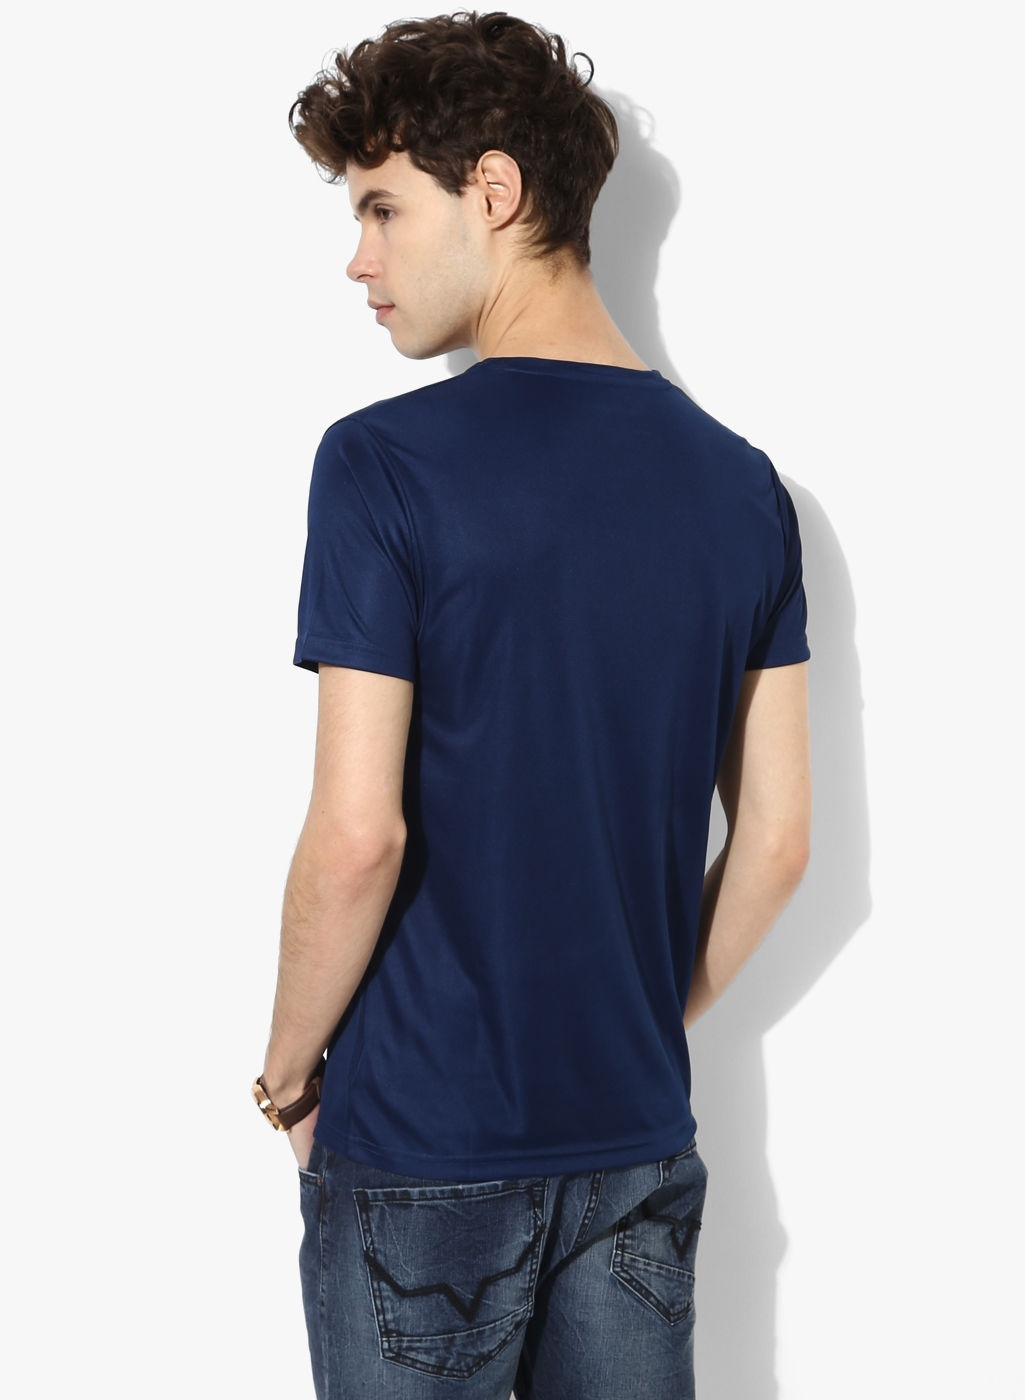 Nwt Jeans Men's Navy Pepe Graphic Slim Fit Round Neck Polycotton T-shirt Men Cot image 3